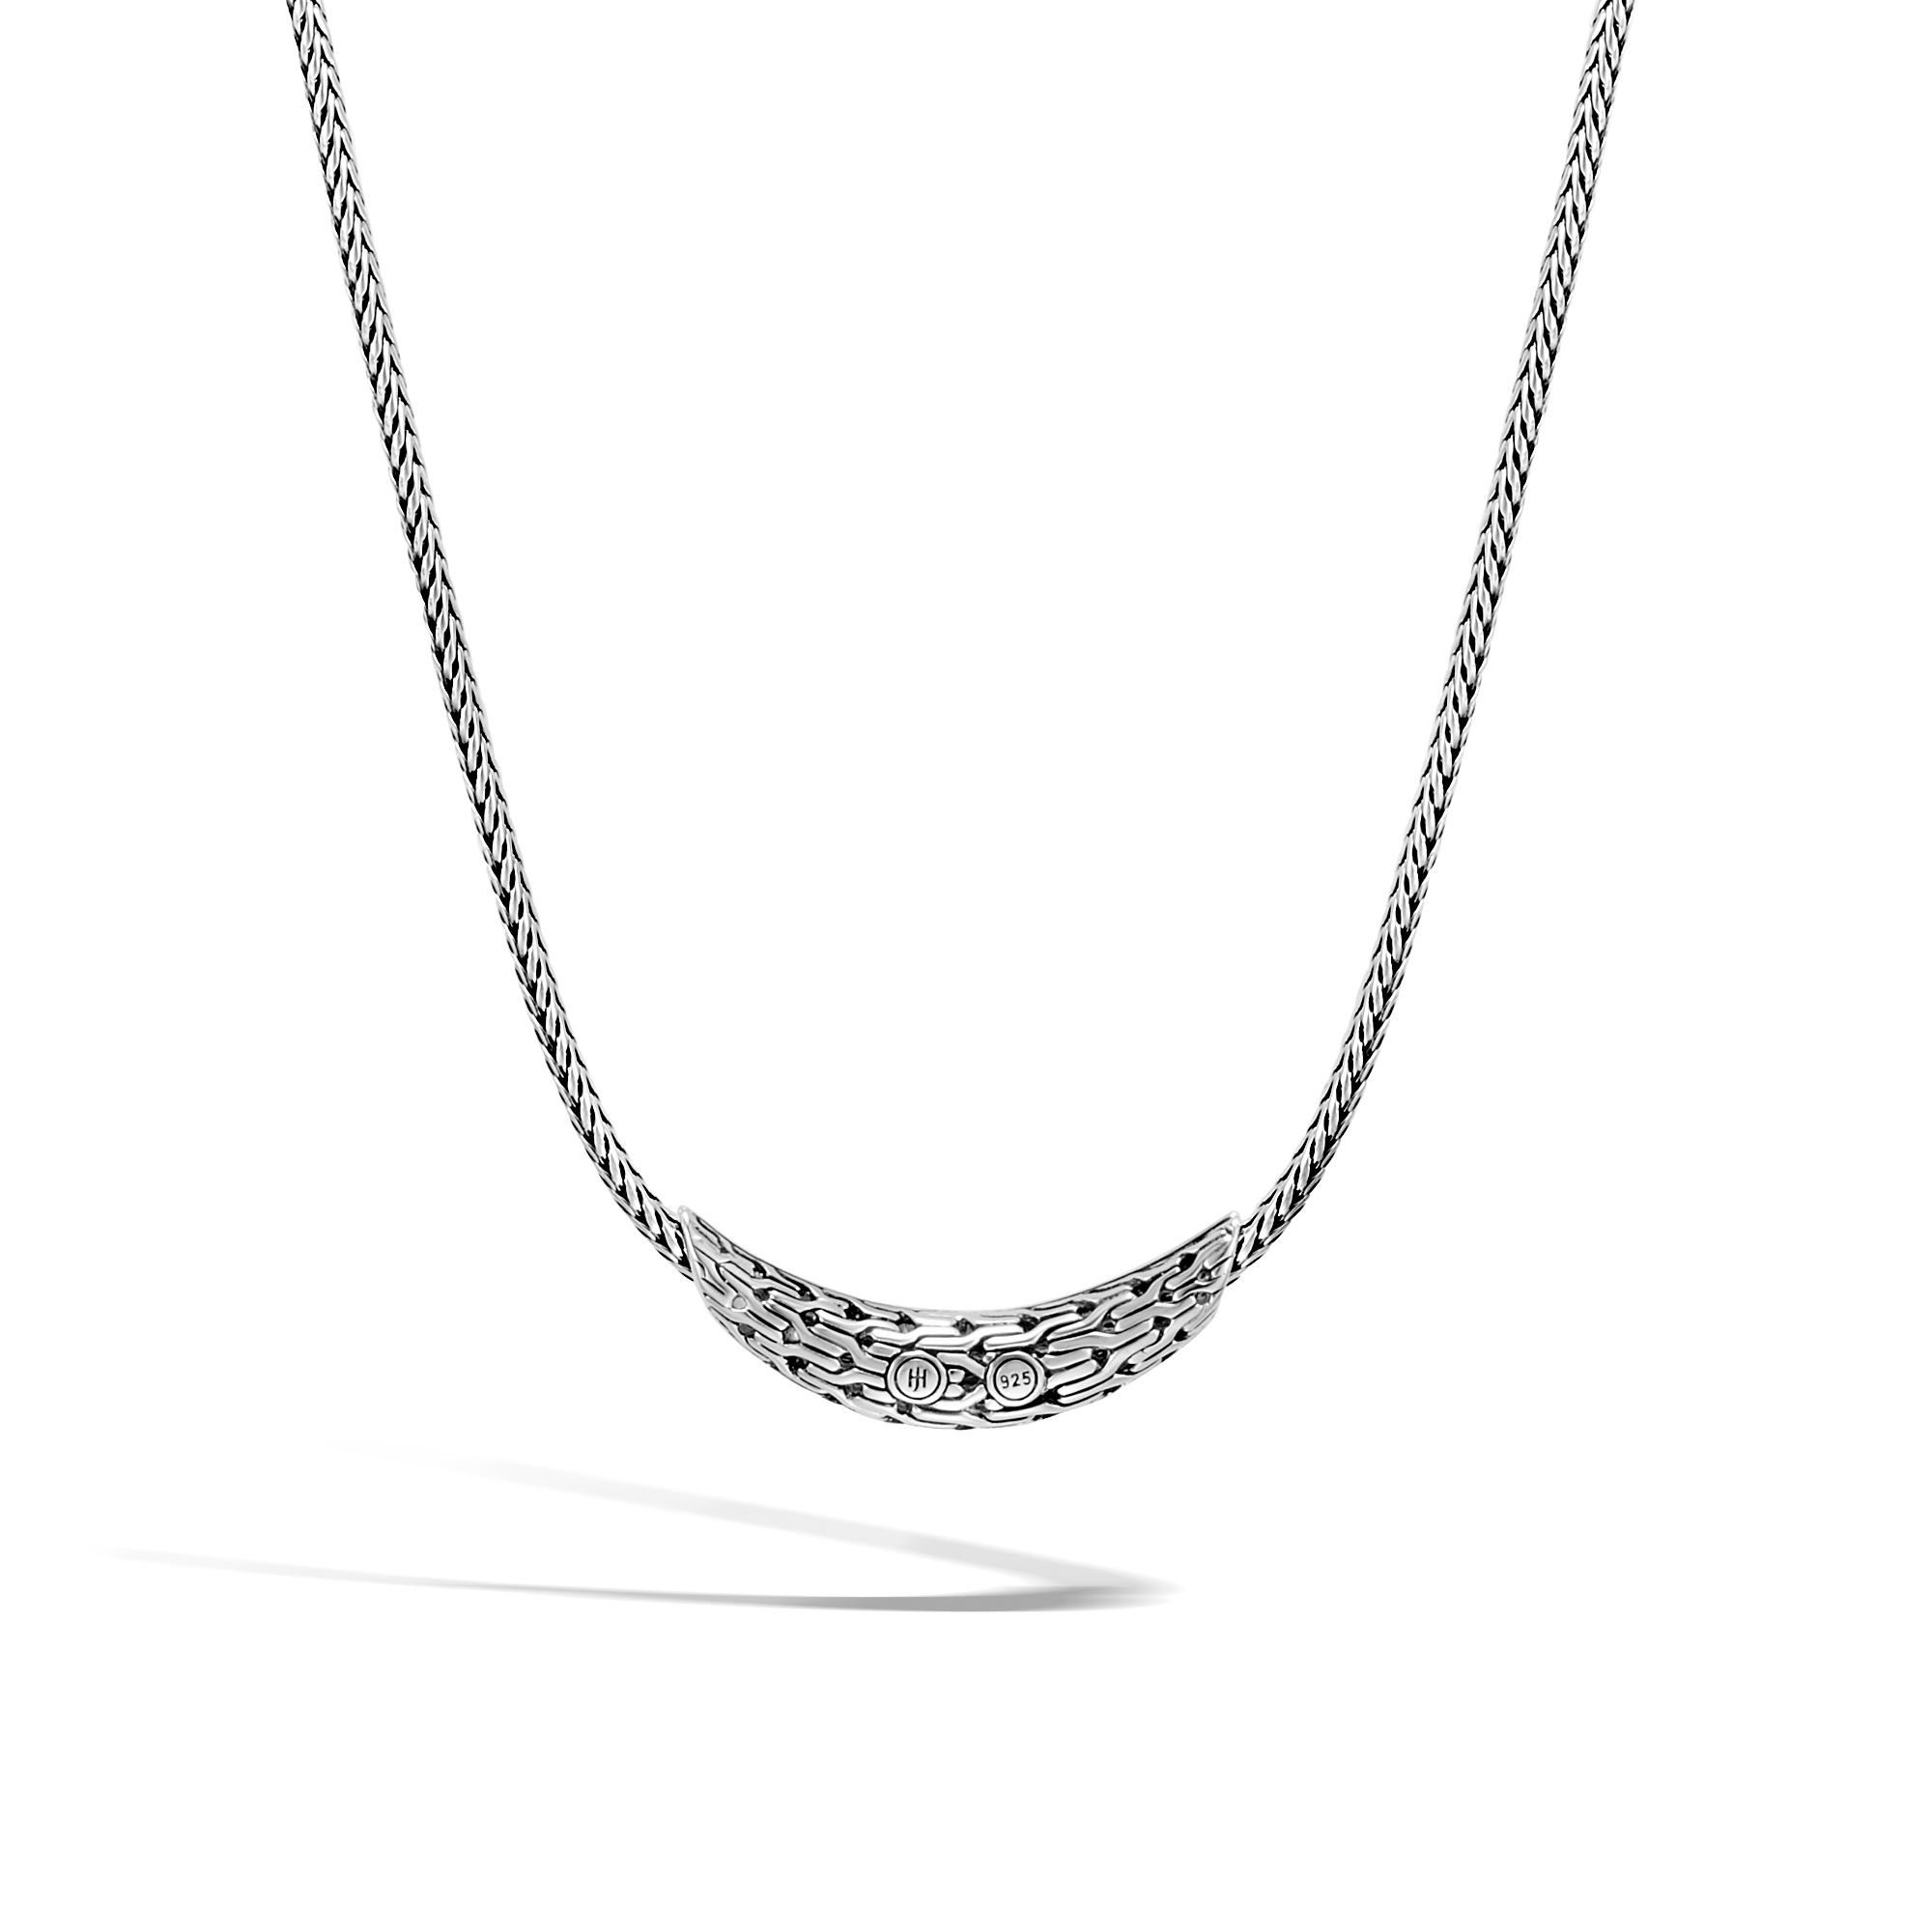 Classic Chain Necklace in Silver with Gemstone, Blue Sapphire, large